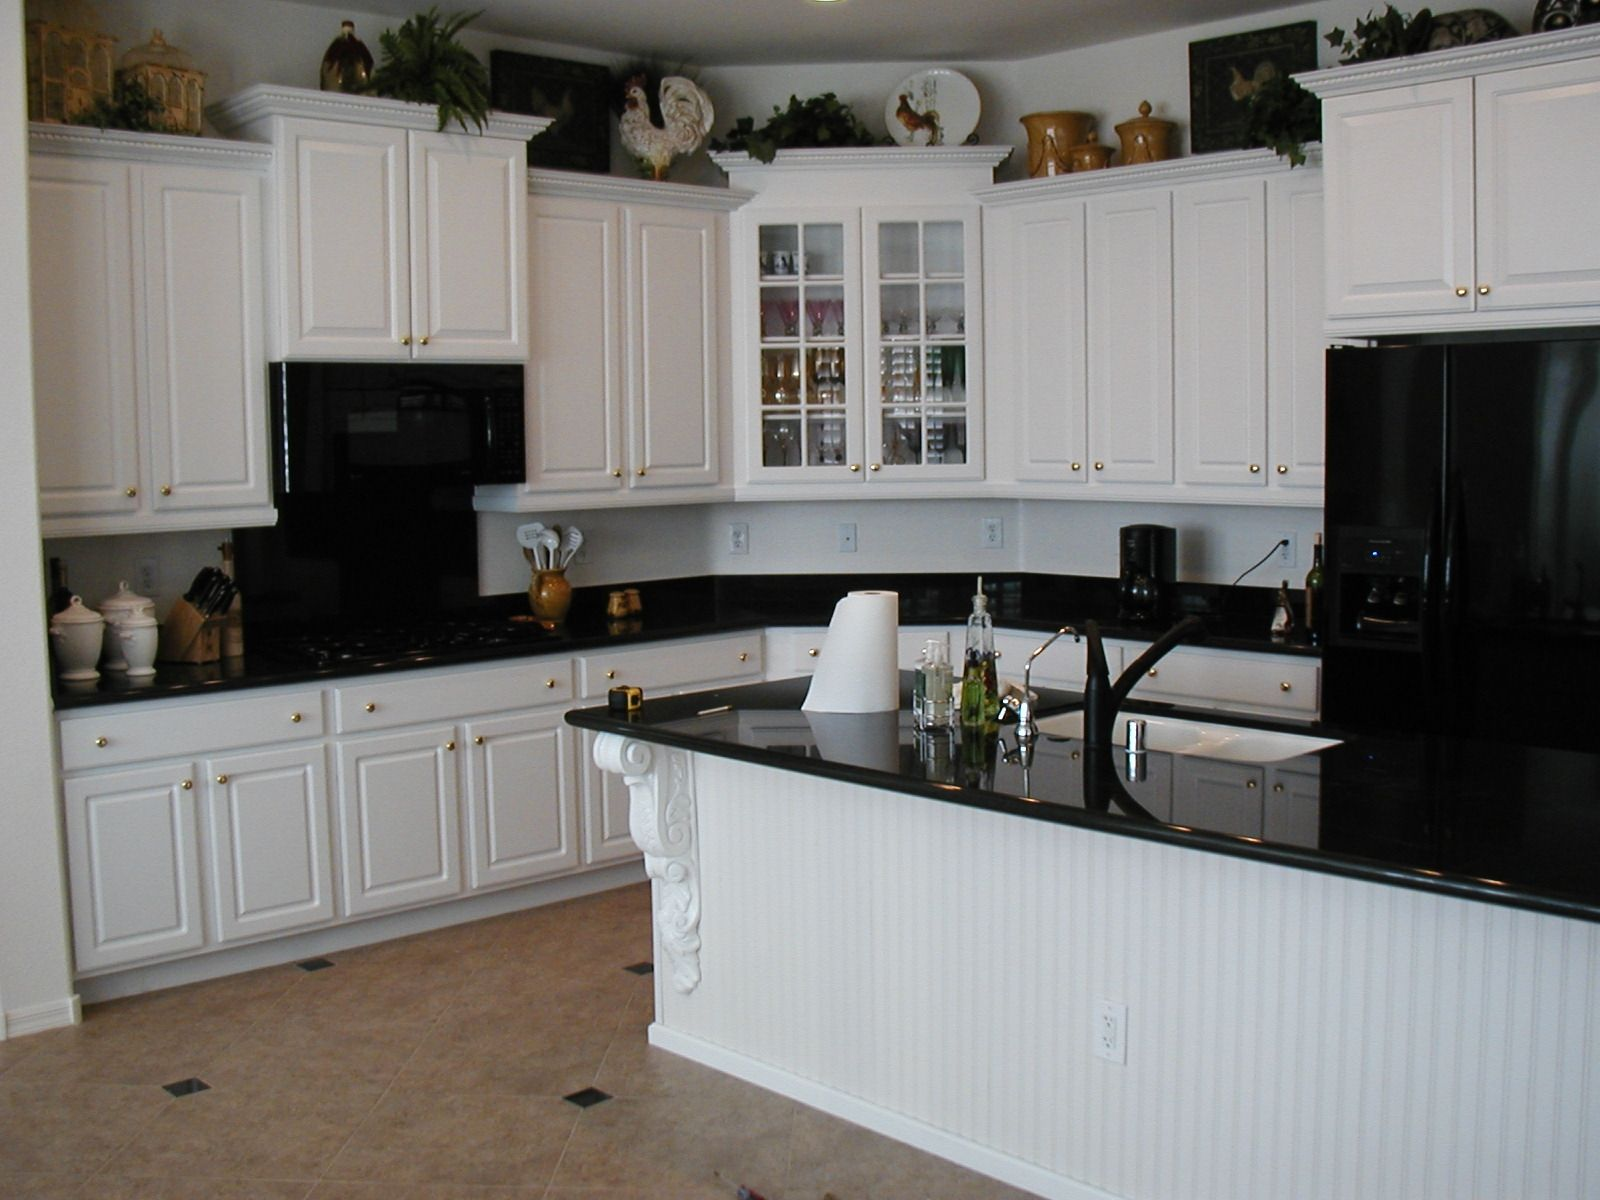 Black Kitchen Walls White Cabinets creamy white kitchen cabinets with black appliances | are white